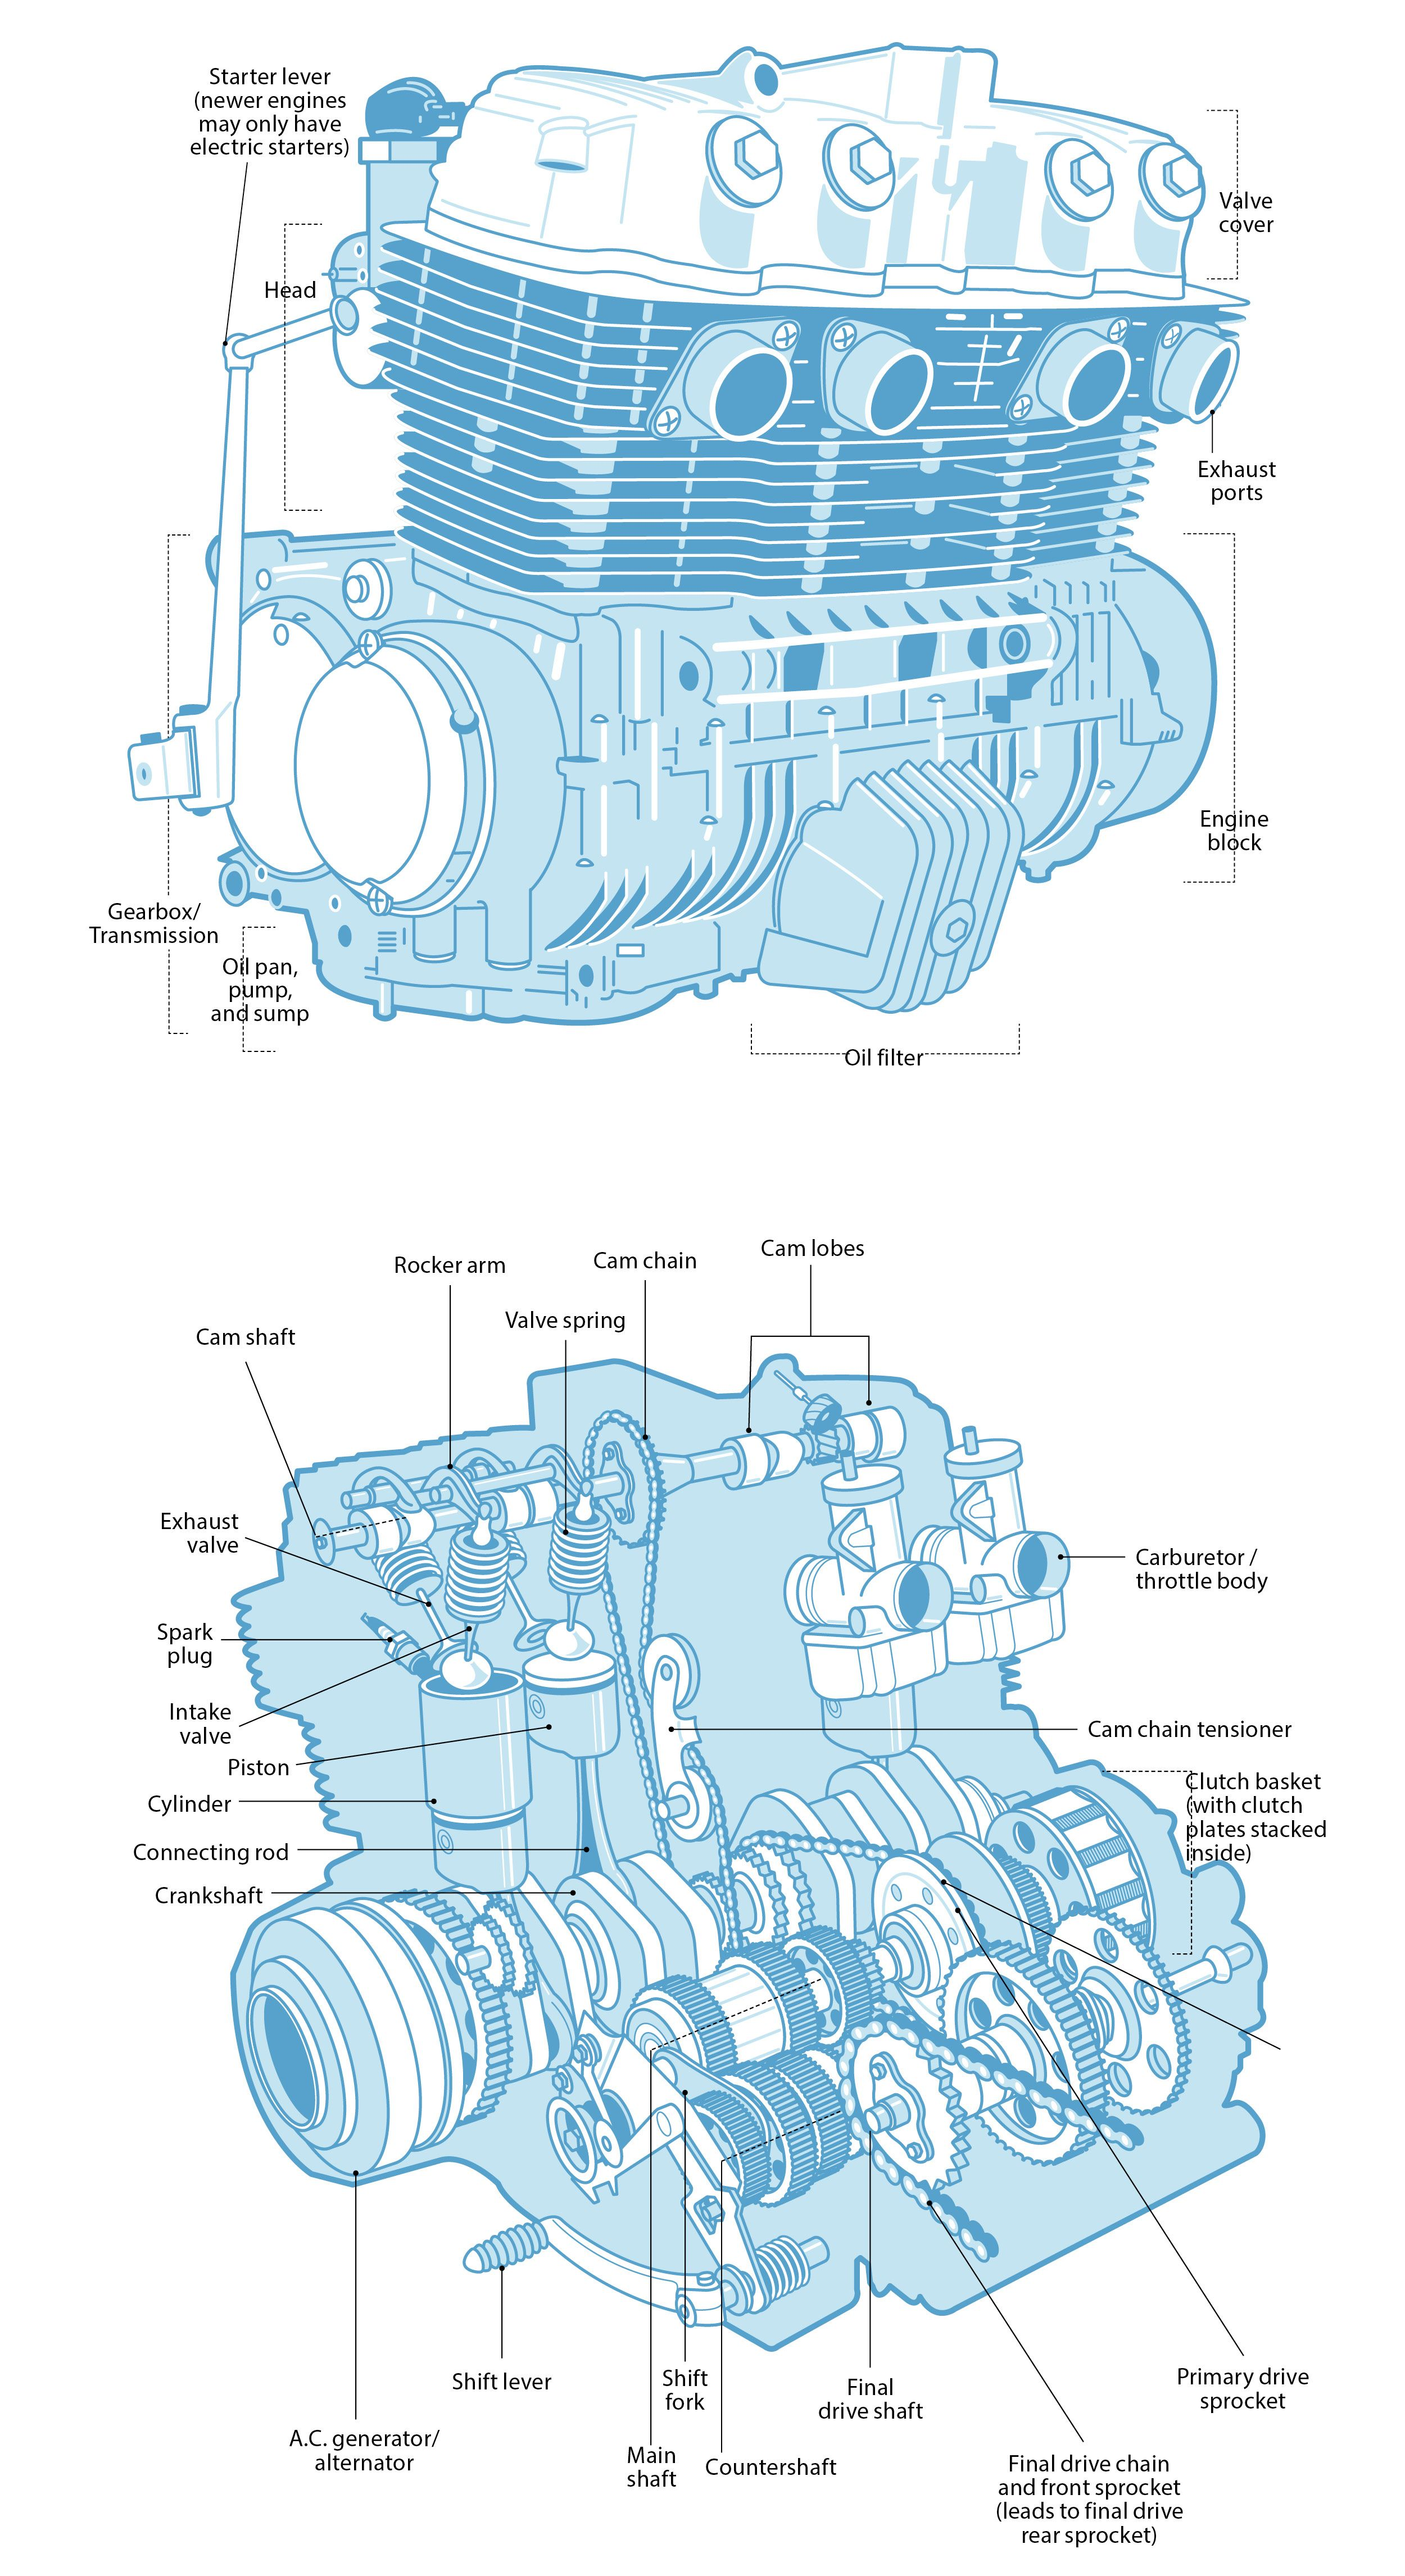 hight resolution of understand engine anatomy tip 262 from the pages of the total motorcycling manual